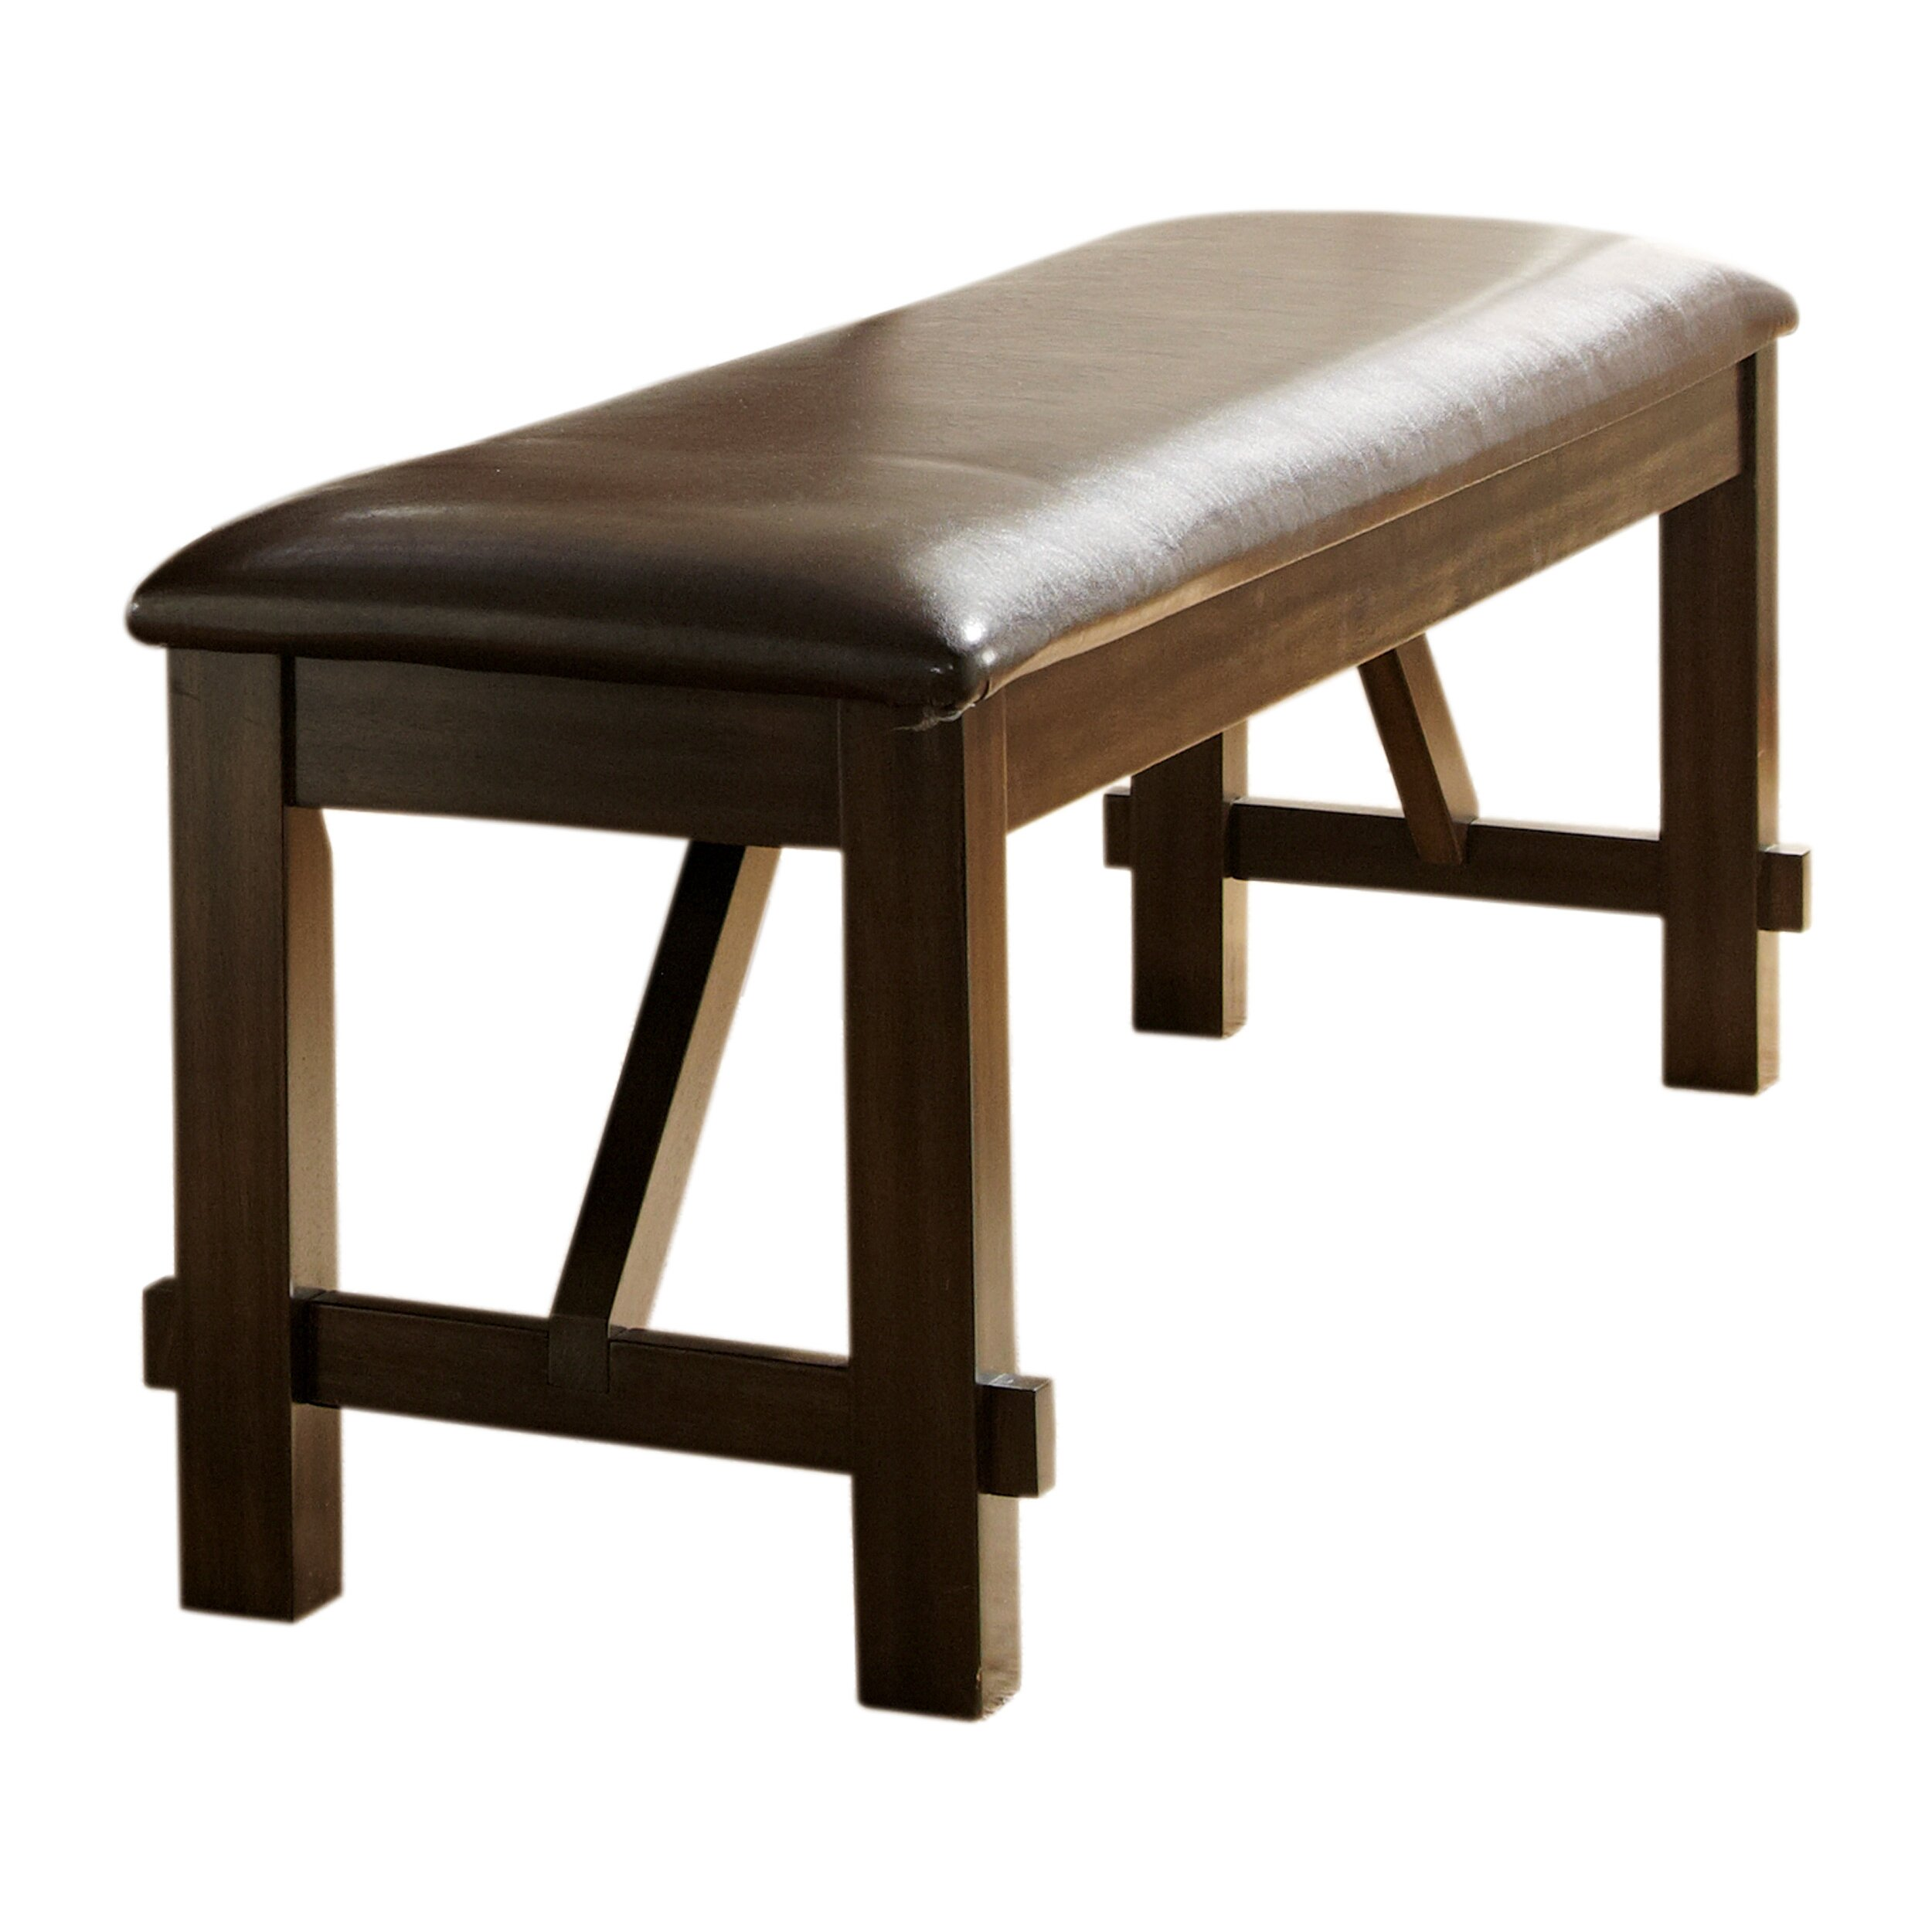 Woodhaven Hill Roy Upholstered Kitchen Bench & Reviews